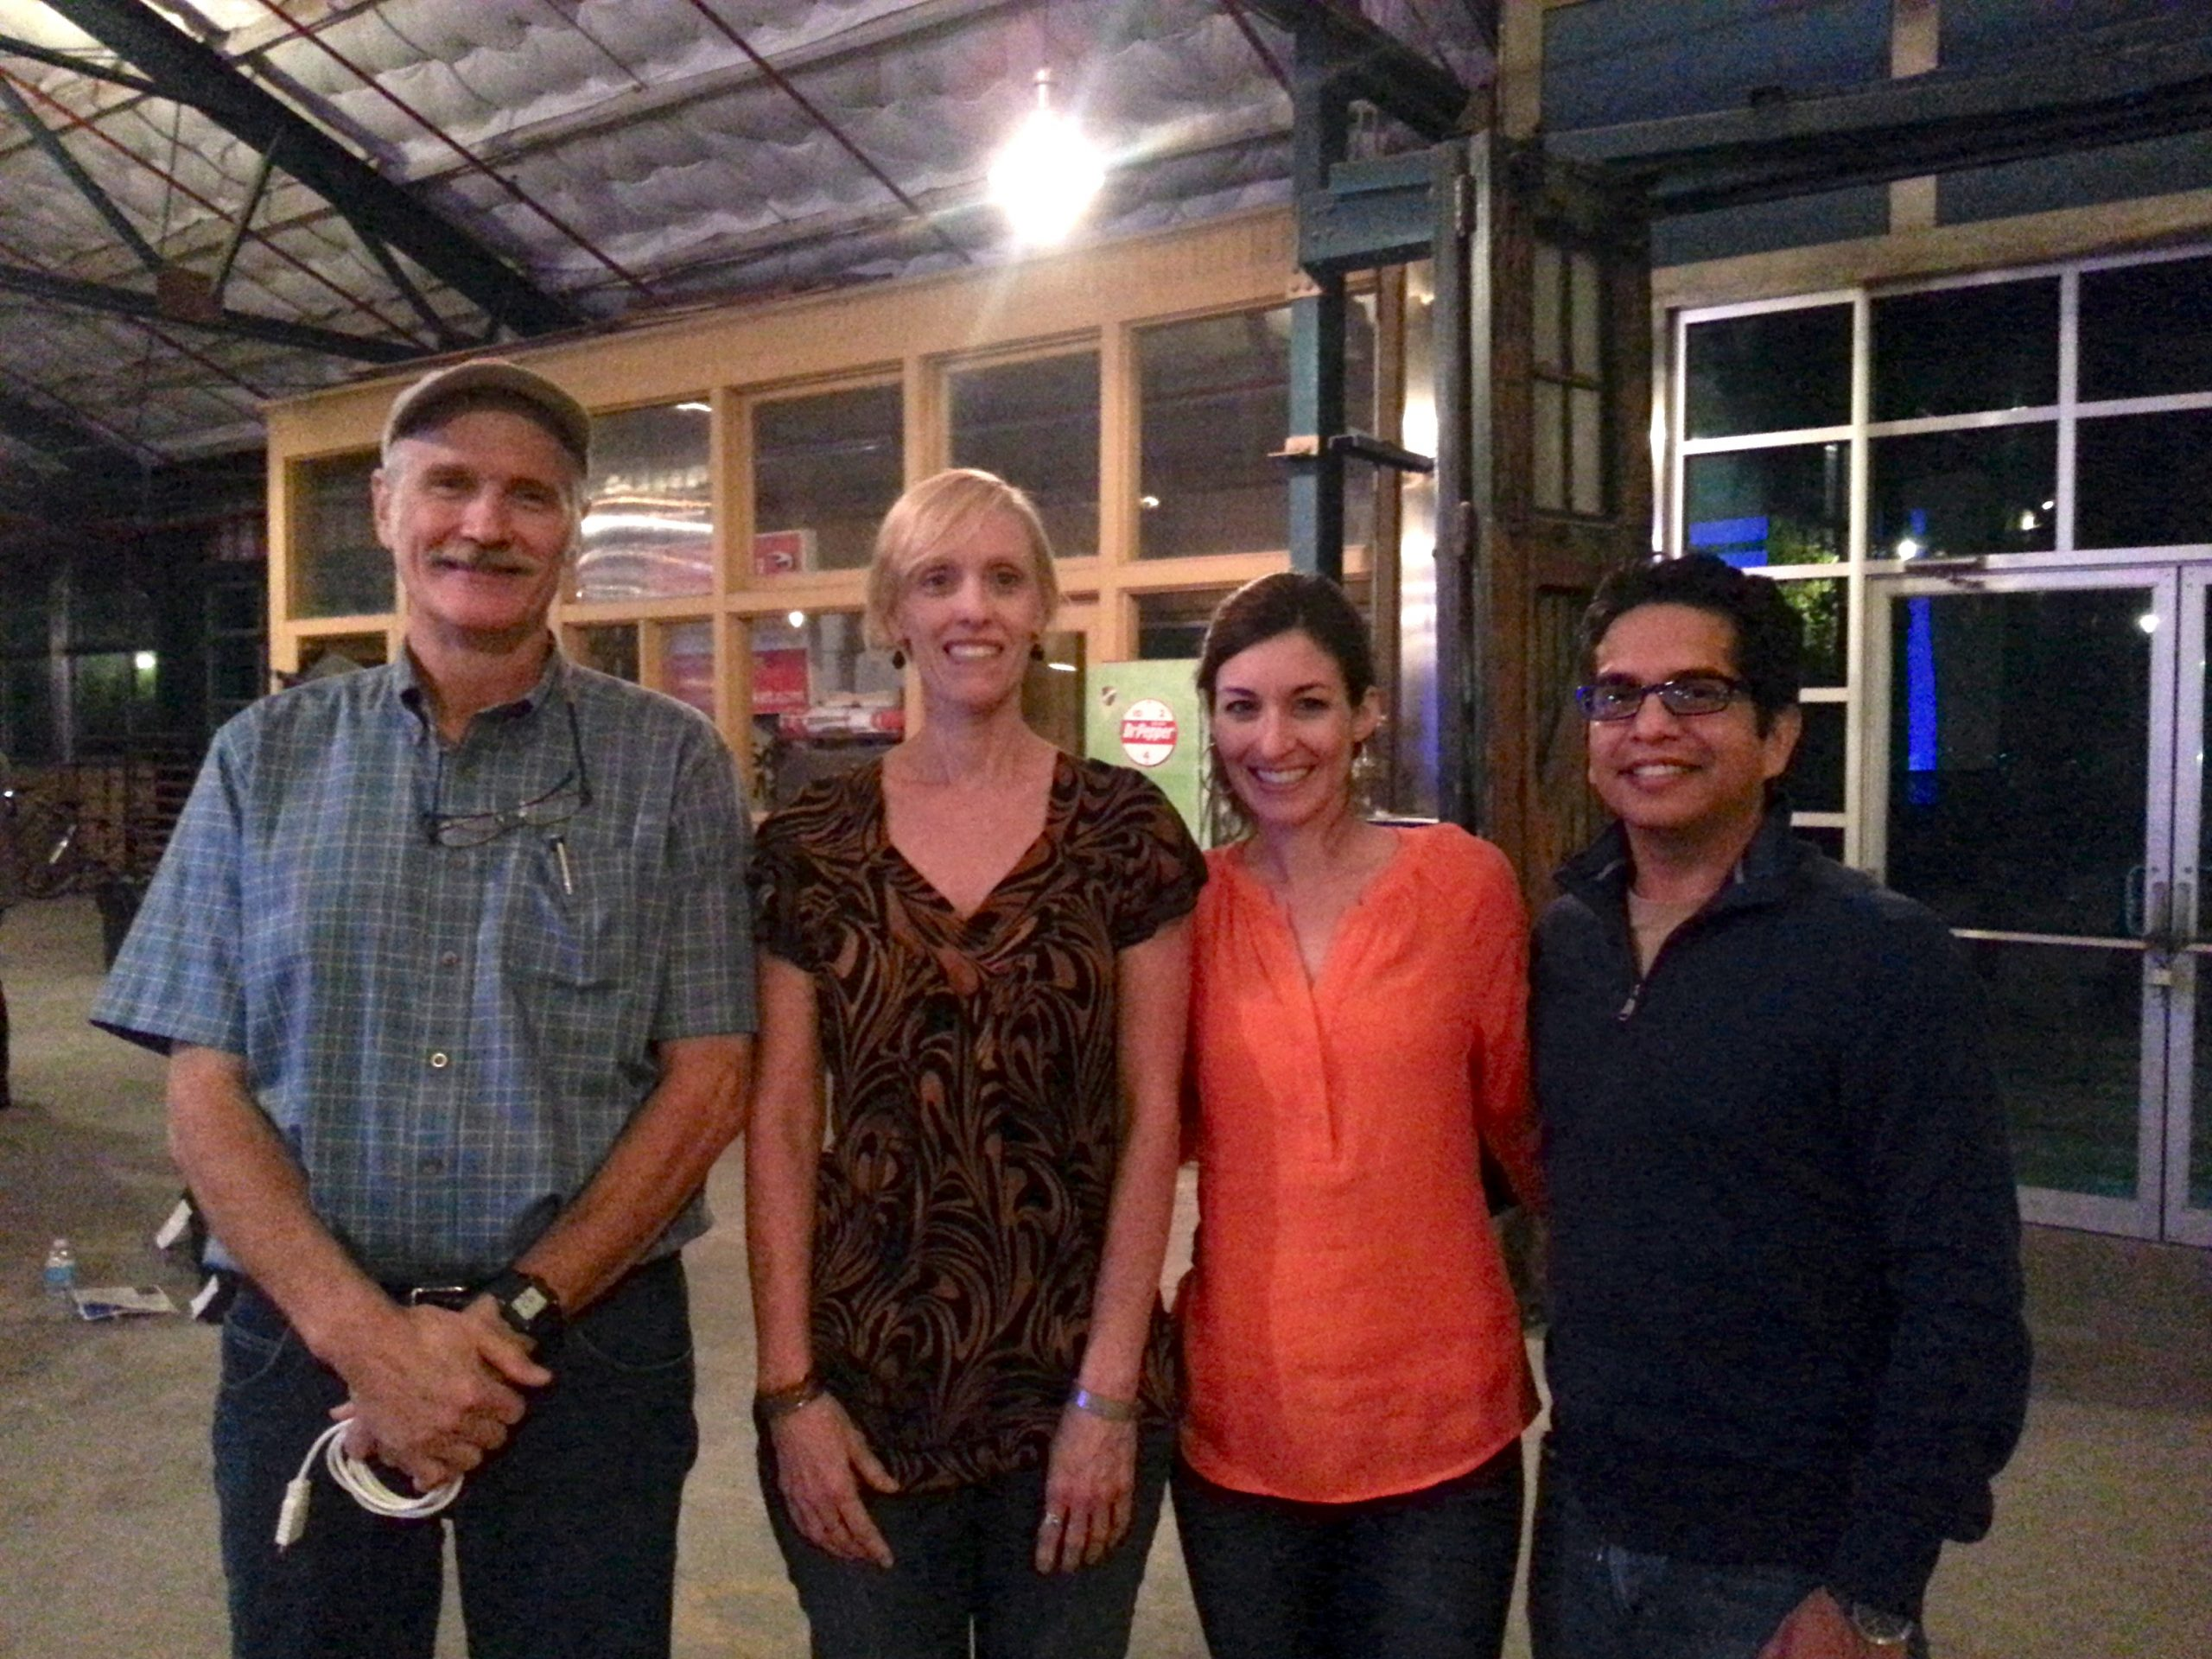 From left: Astronomer Bill Wren, Hill Country Alliance Intern Julie Cornelius, and AIA San Antonio COTE's Michelle and Carlos Cruz pose for a photo in the Cleary Zimmermann warehouse. Photo by Iris Dimmick.